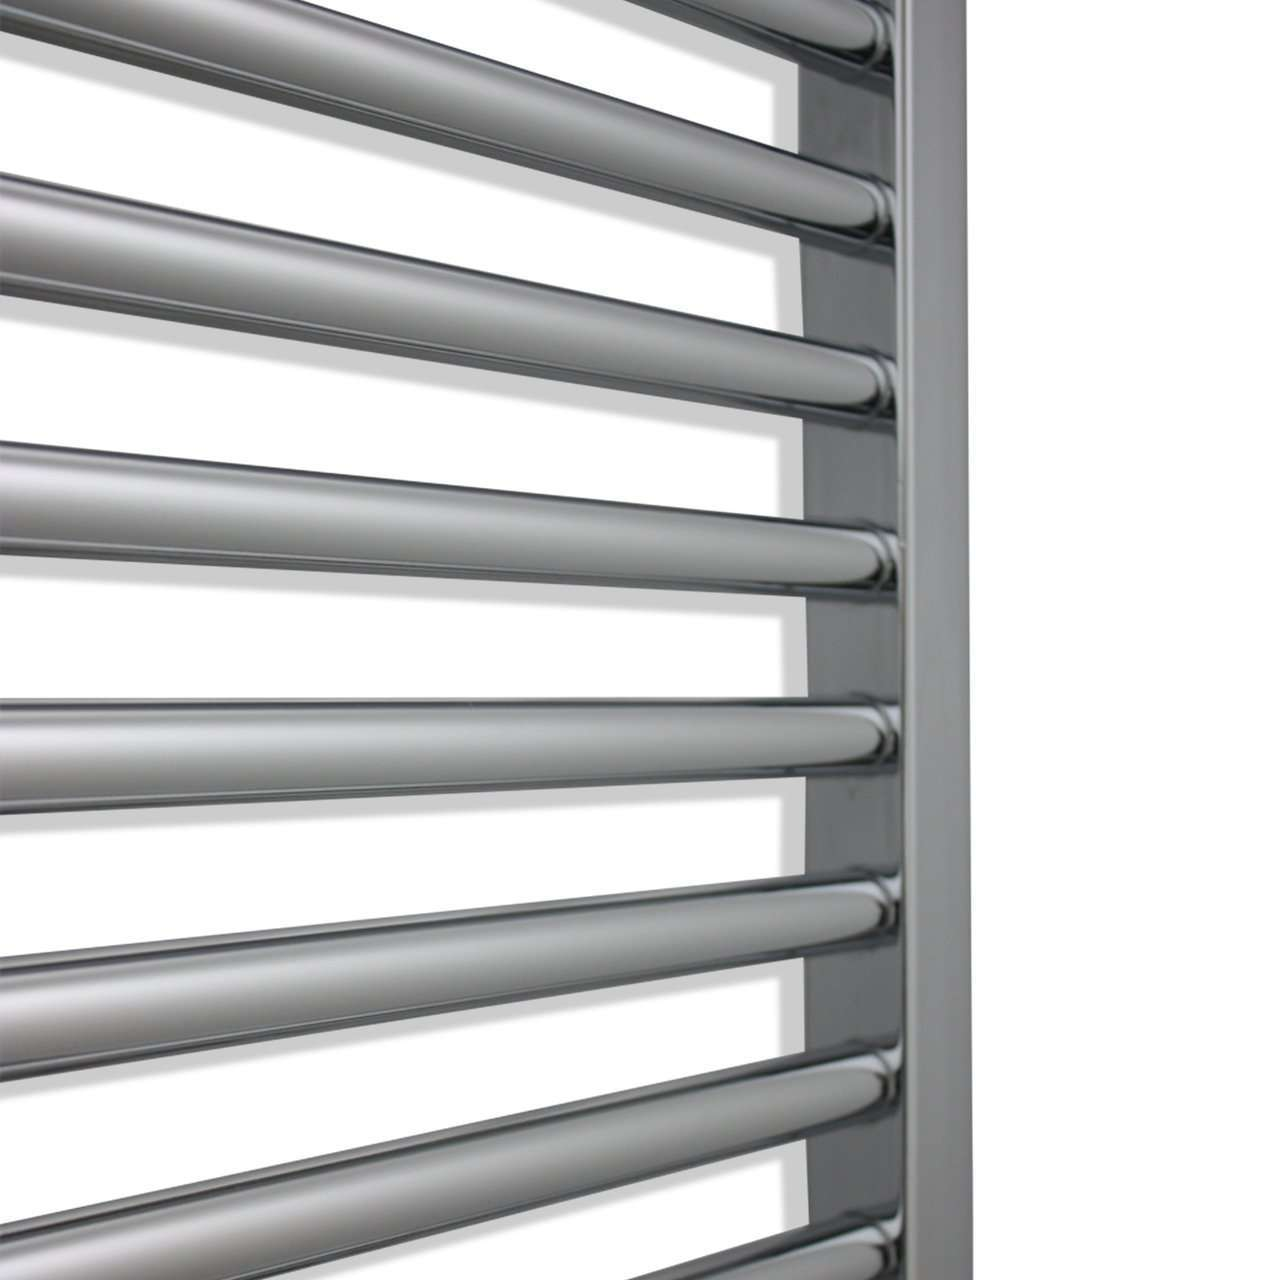 450mm Wide 1700mm High Curved Chrome Heated Towel Rail Radiator HTR